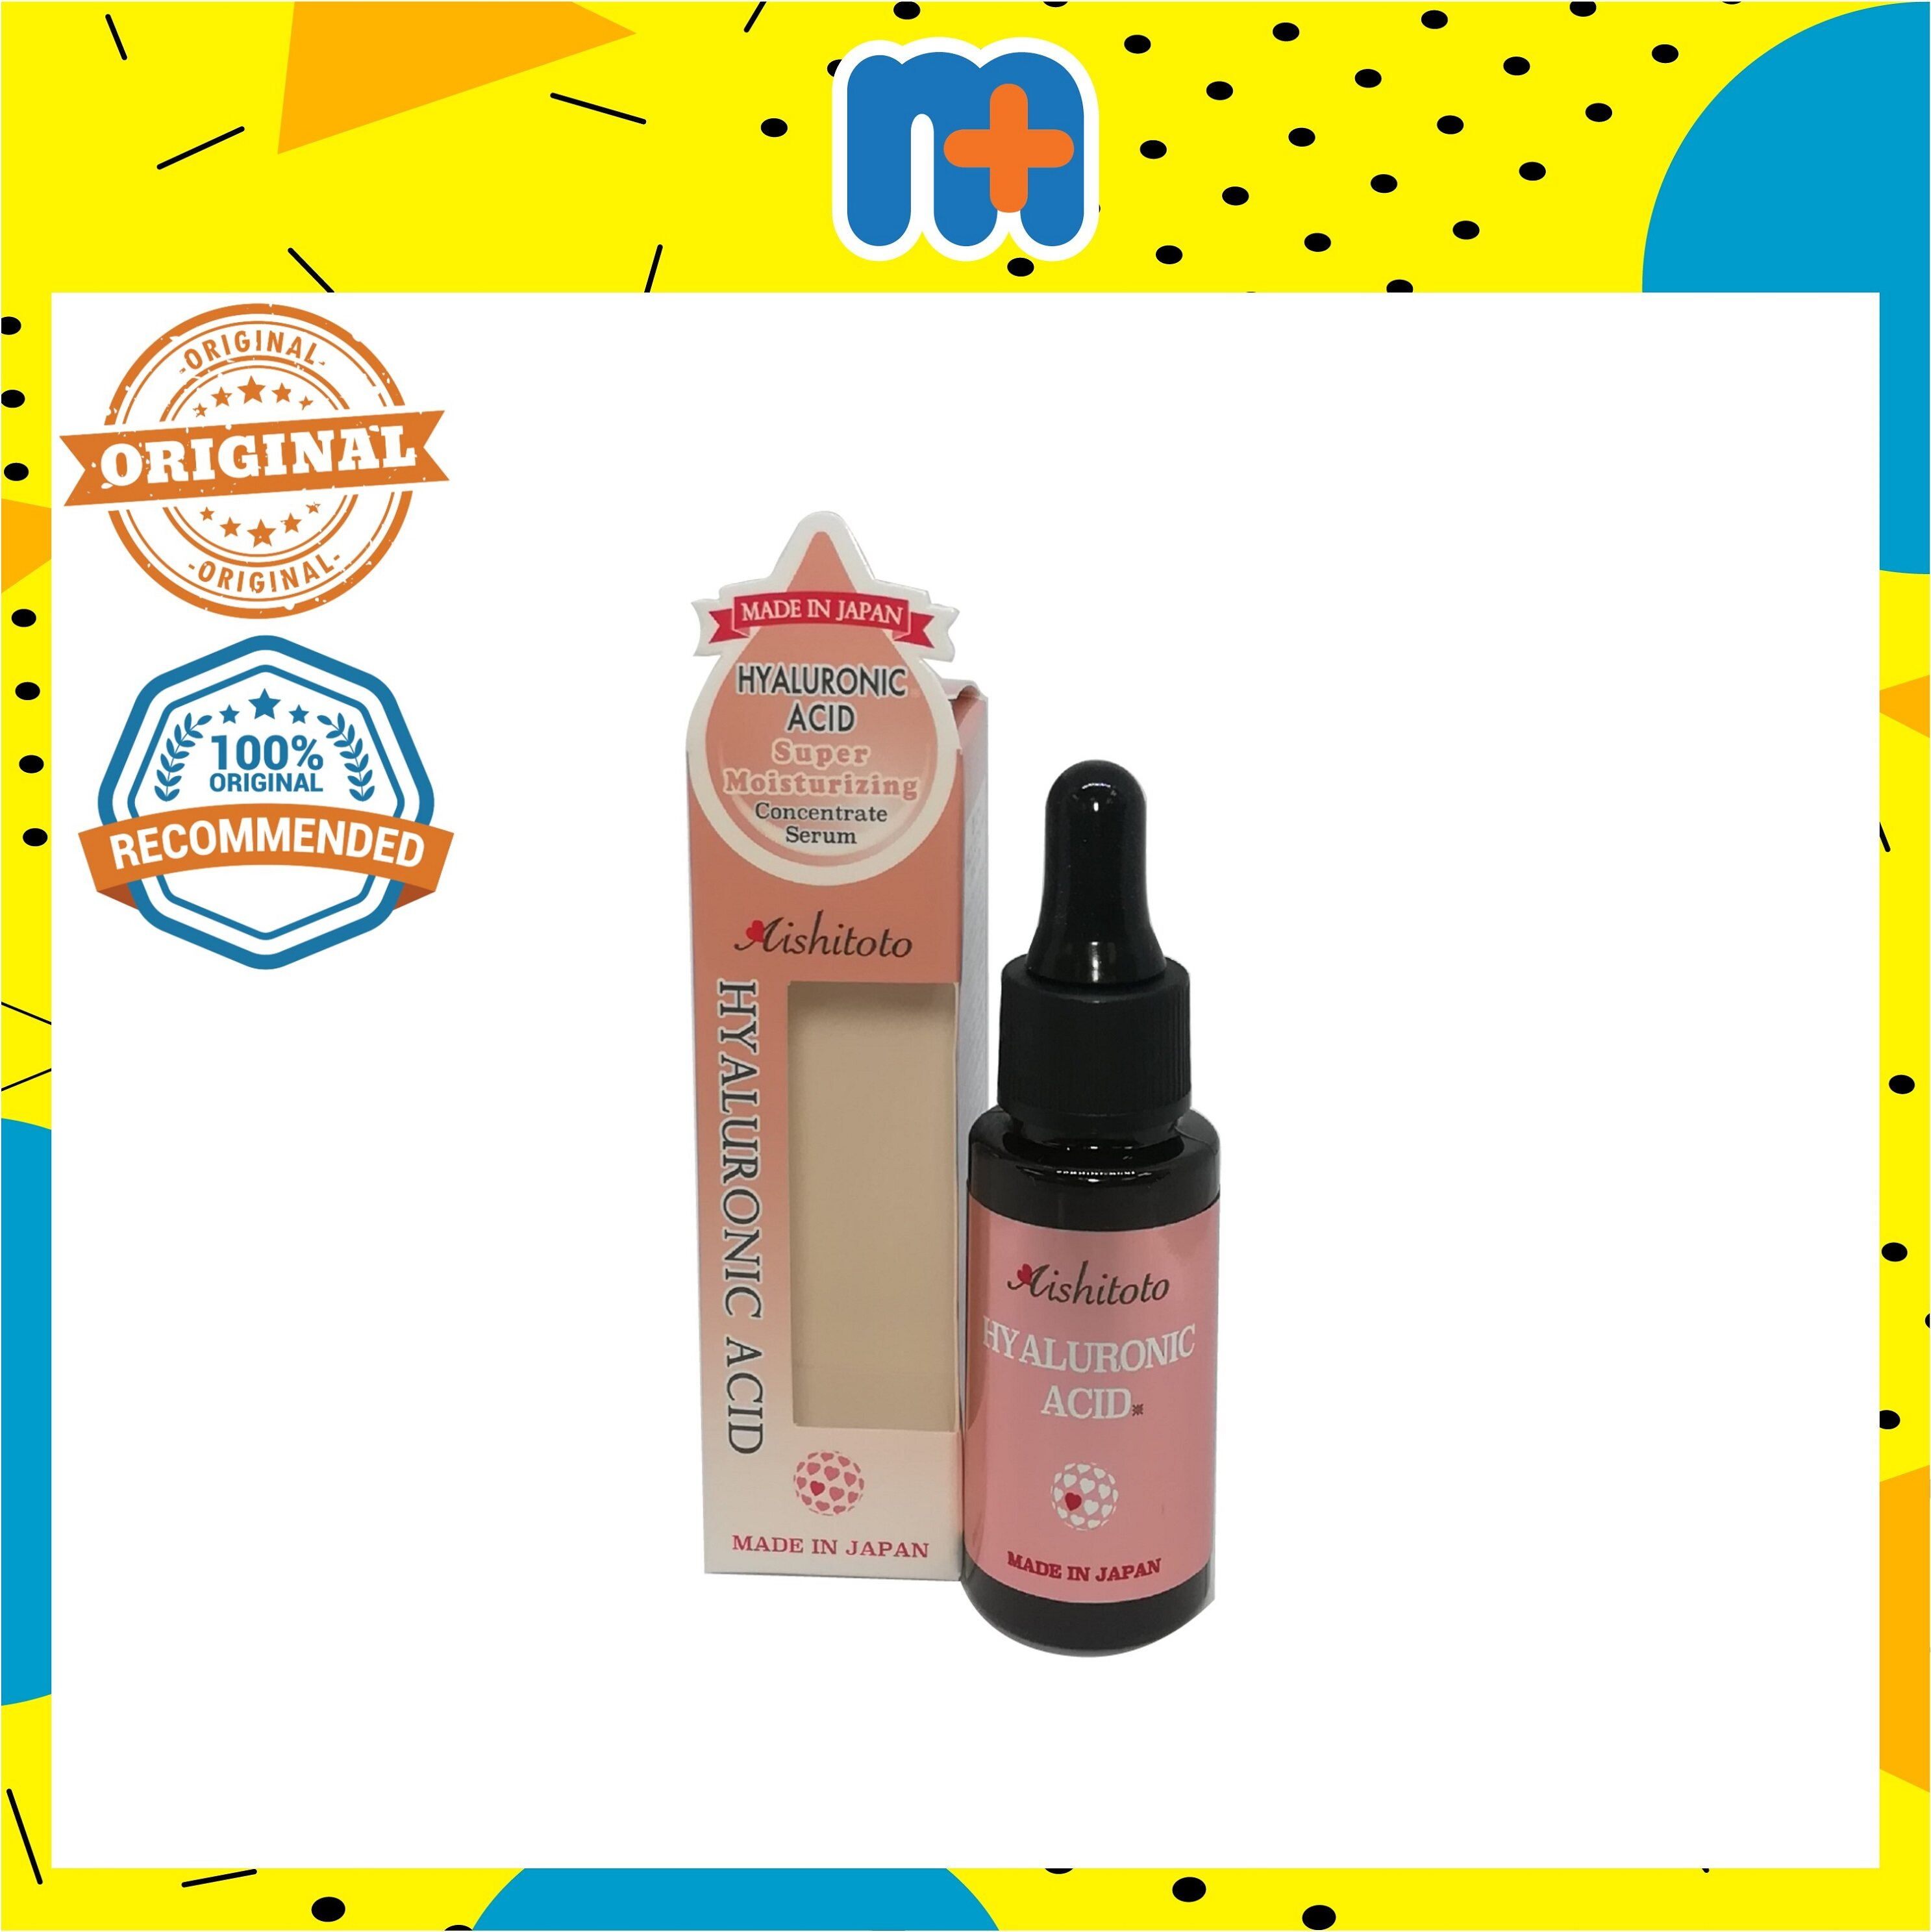 AISHITOTO HYALURONIC ACID CONCENTRATE SERUM